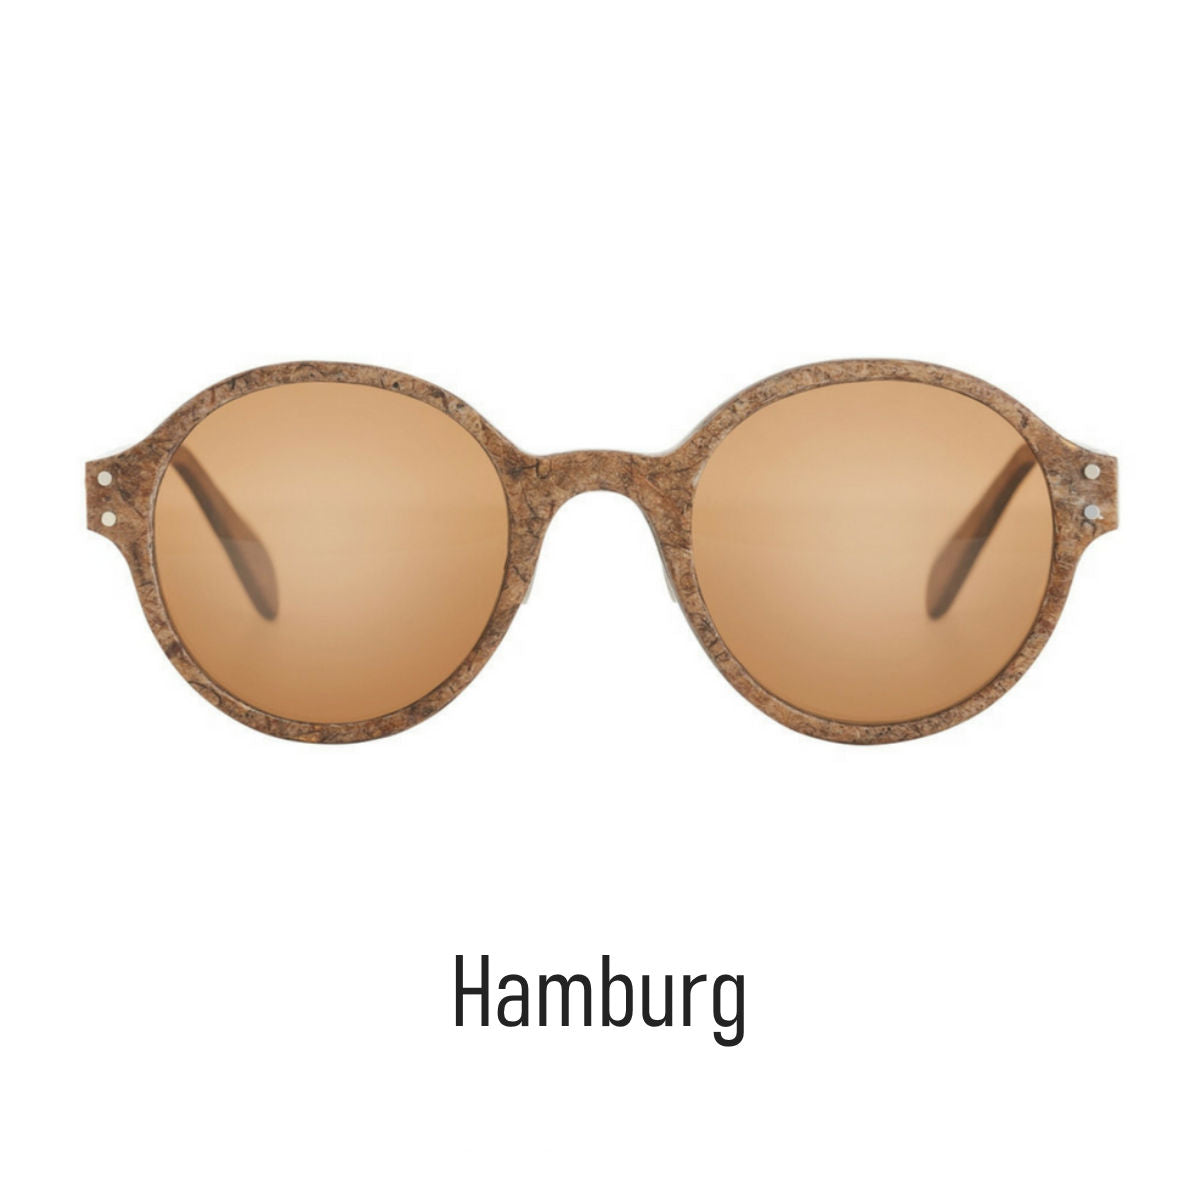 Hemp Eyewear Limited U.S. Release 1st Hemp Sunglasses - Hamburg